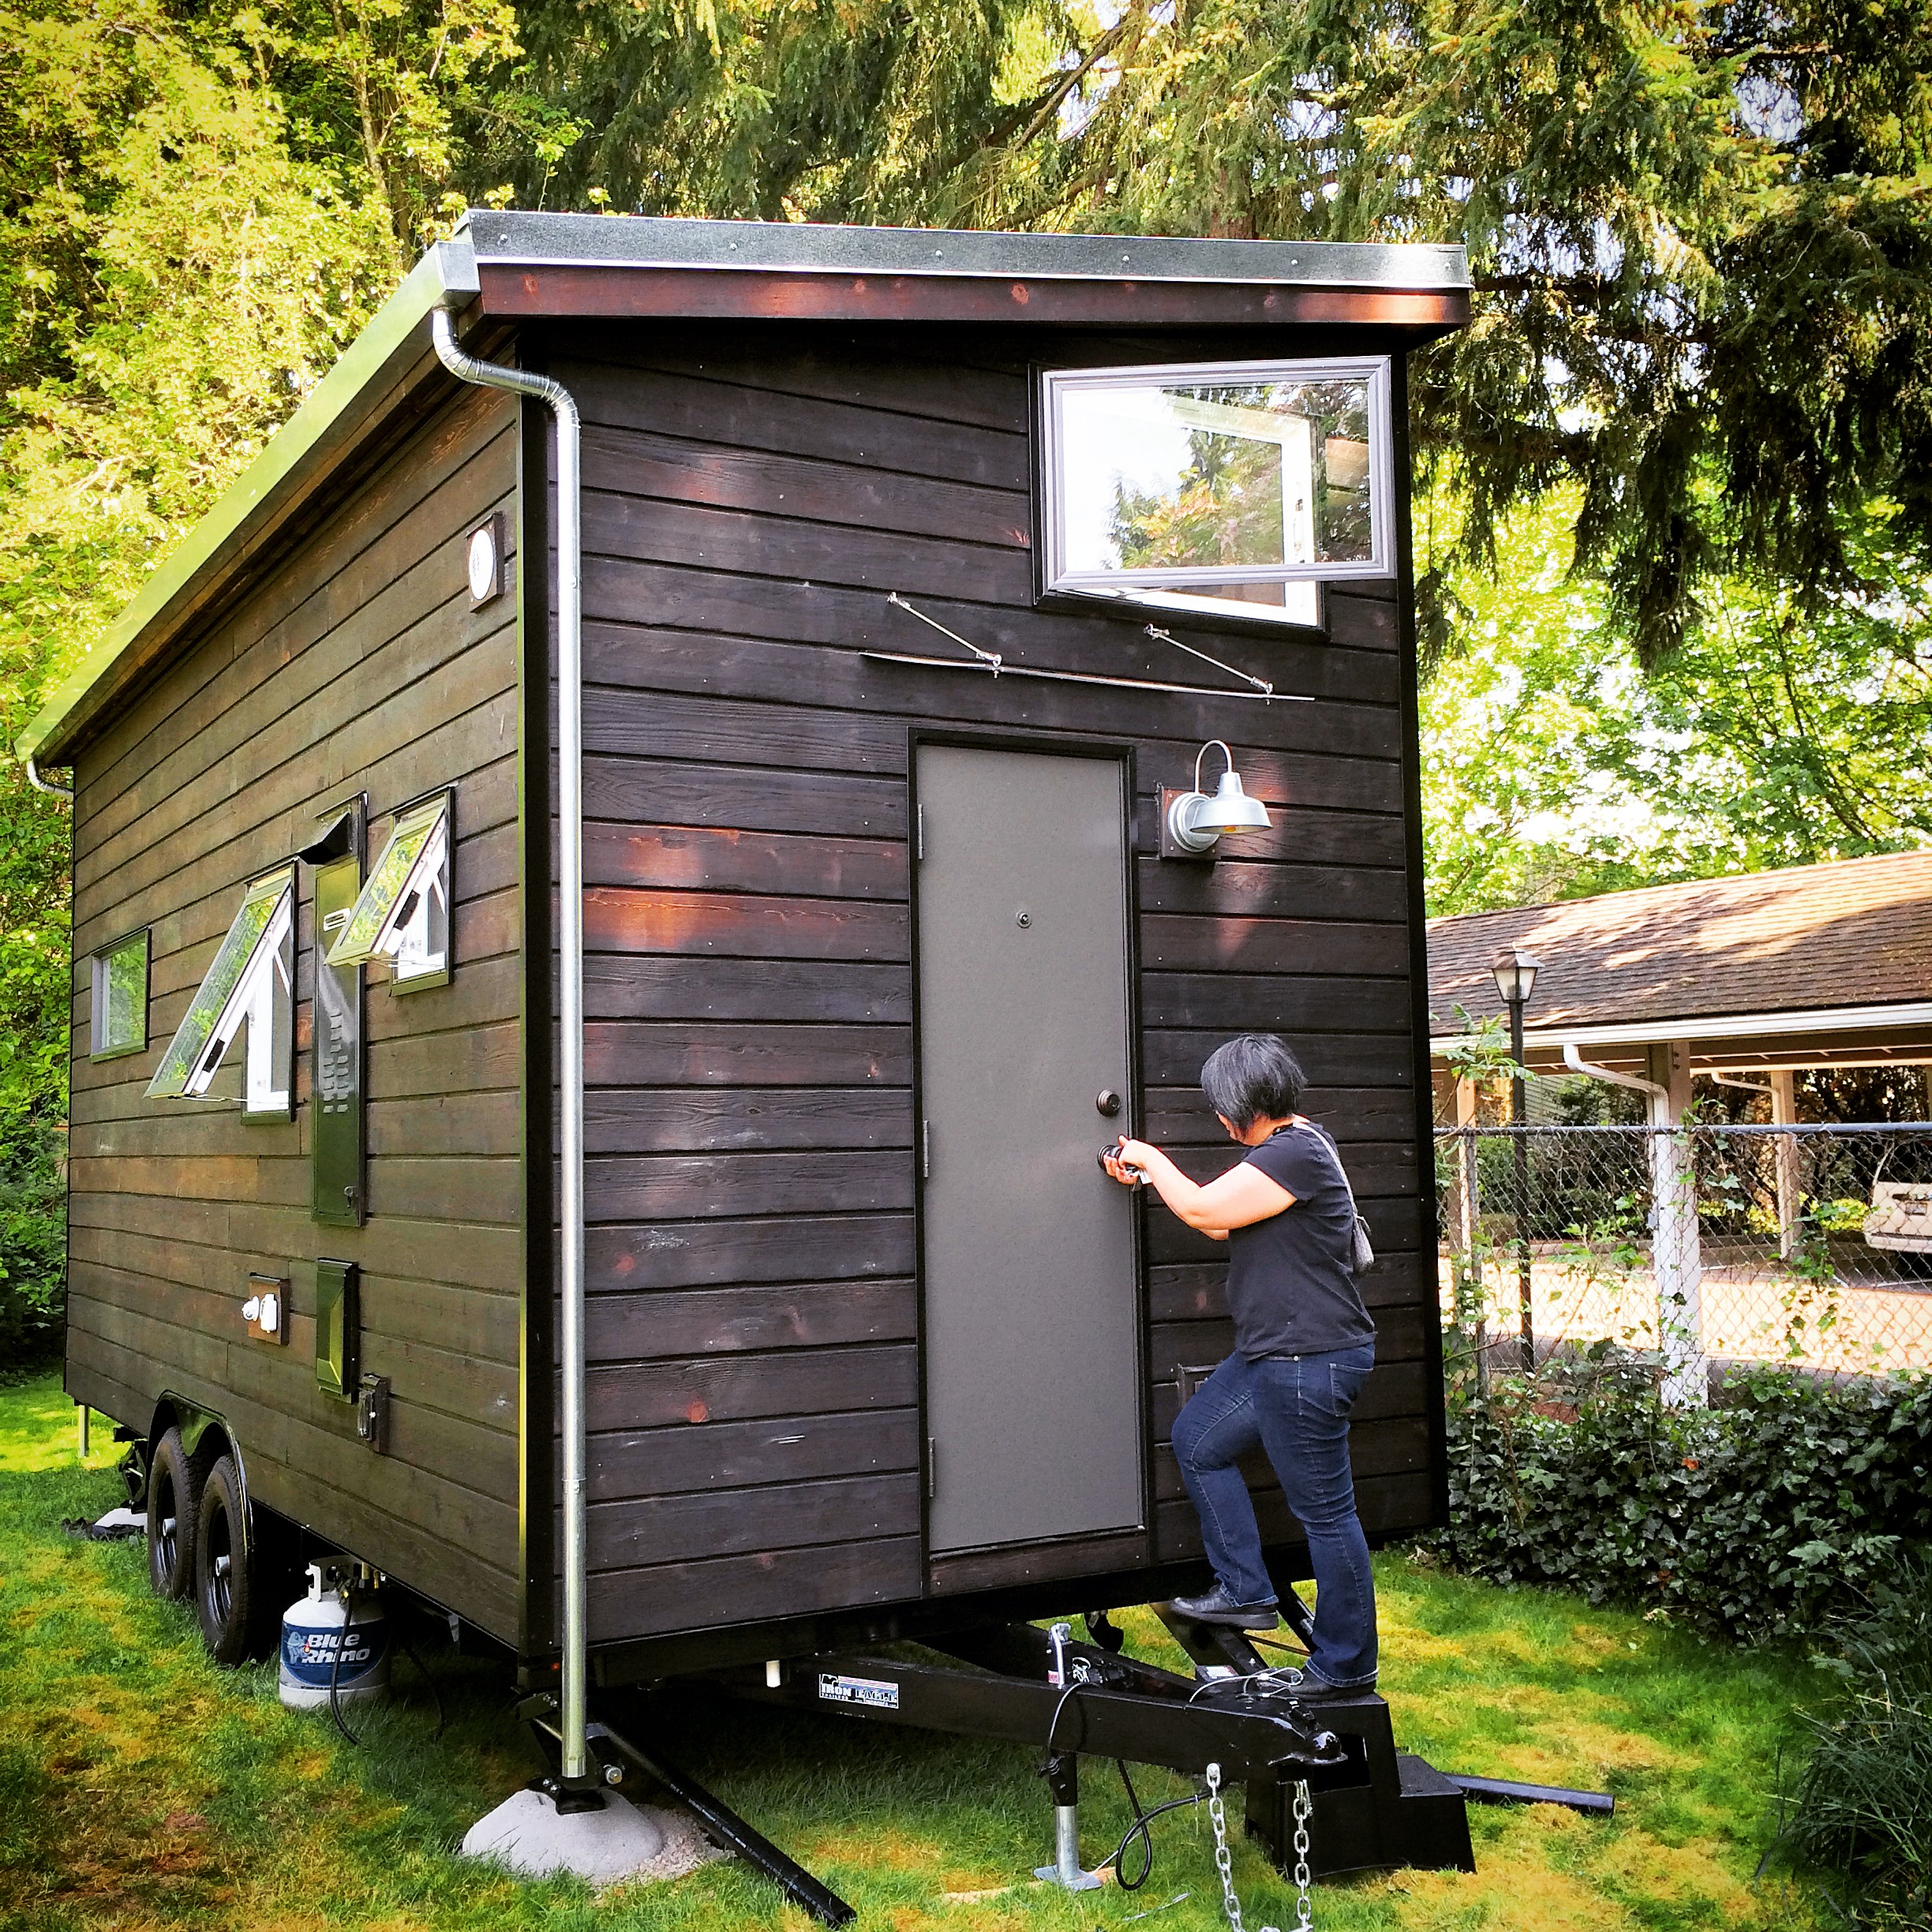 My girlfriend, Kat's Tiny House! She recently got delivery of her tiny house, through  Shelterwise located in Portland, OR. I know you might want to see more, but she currently doesn't have a website to showcase her house and her story, but you can find more photos on my  Instagram  page.